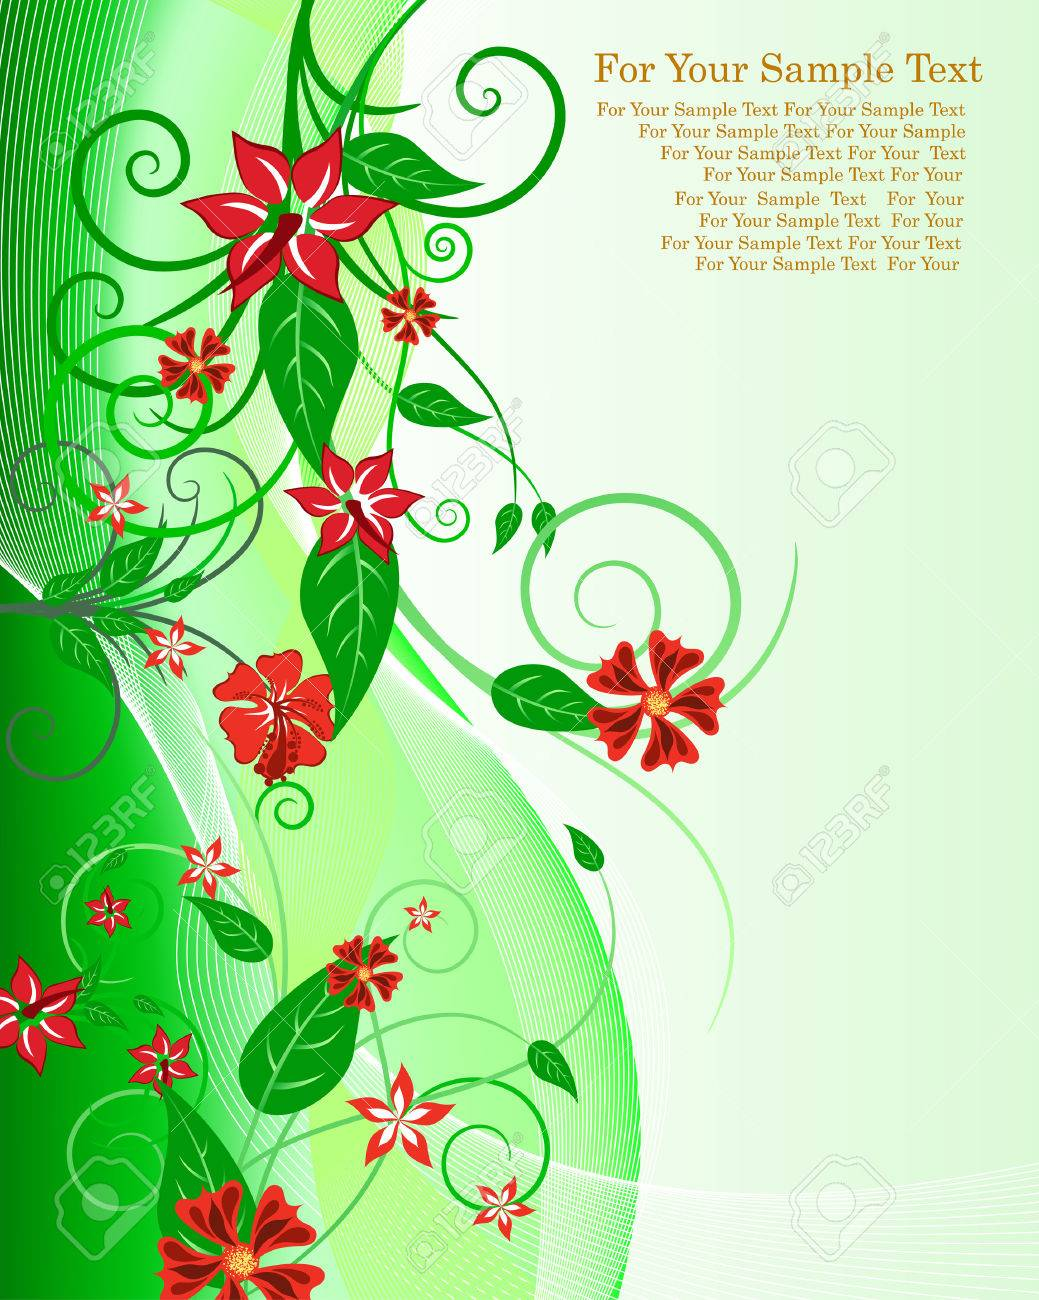 Green floral design vector graphic free vector graphics all free - Green Floral Vector Background For Design Use Stock Vector 4558972